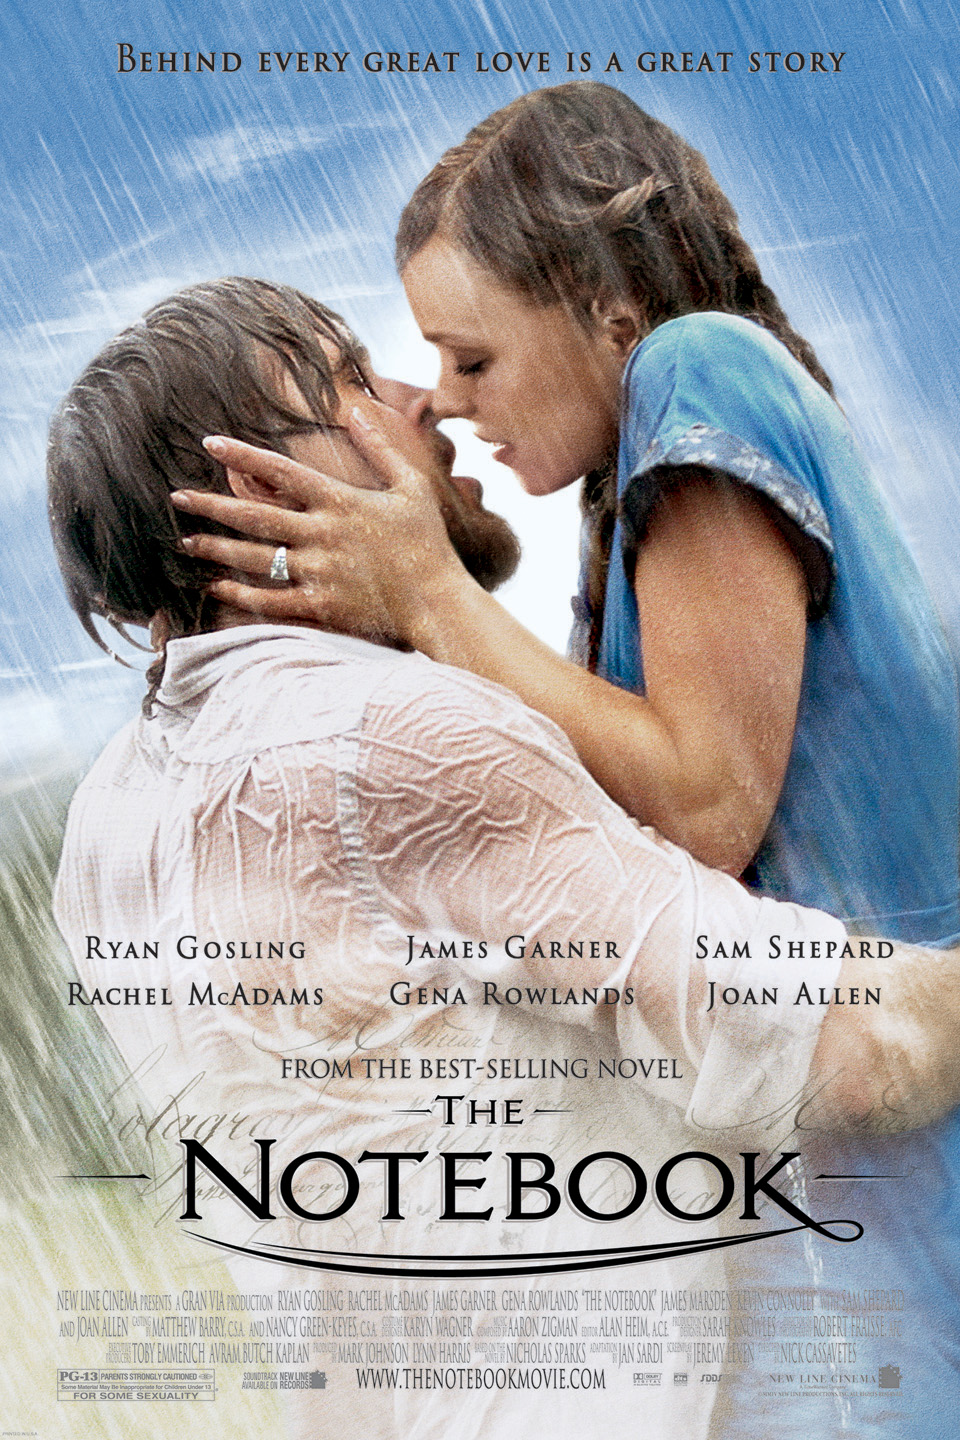 Keyart for The Notebook.